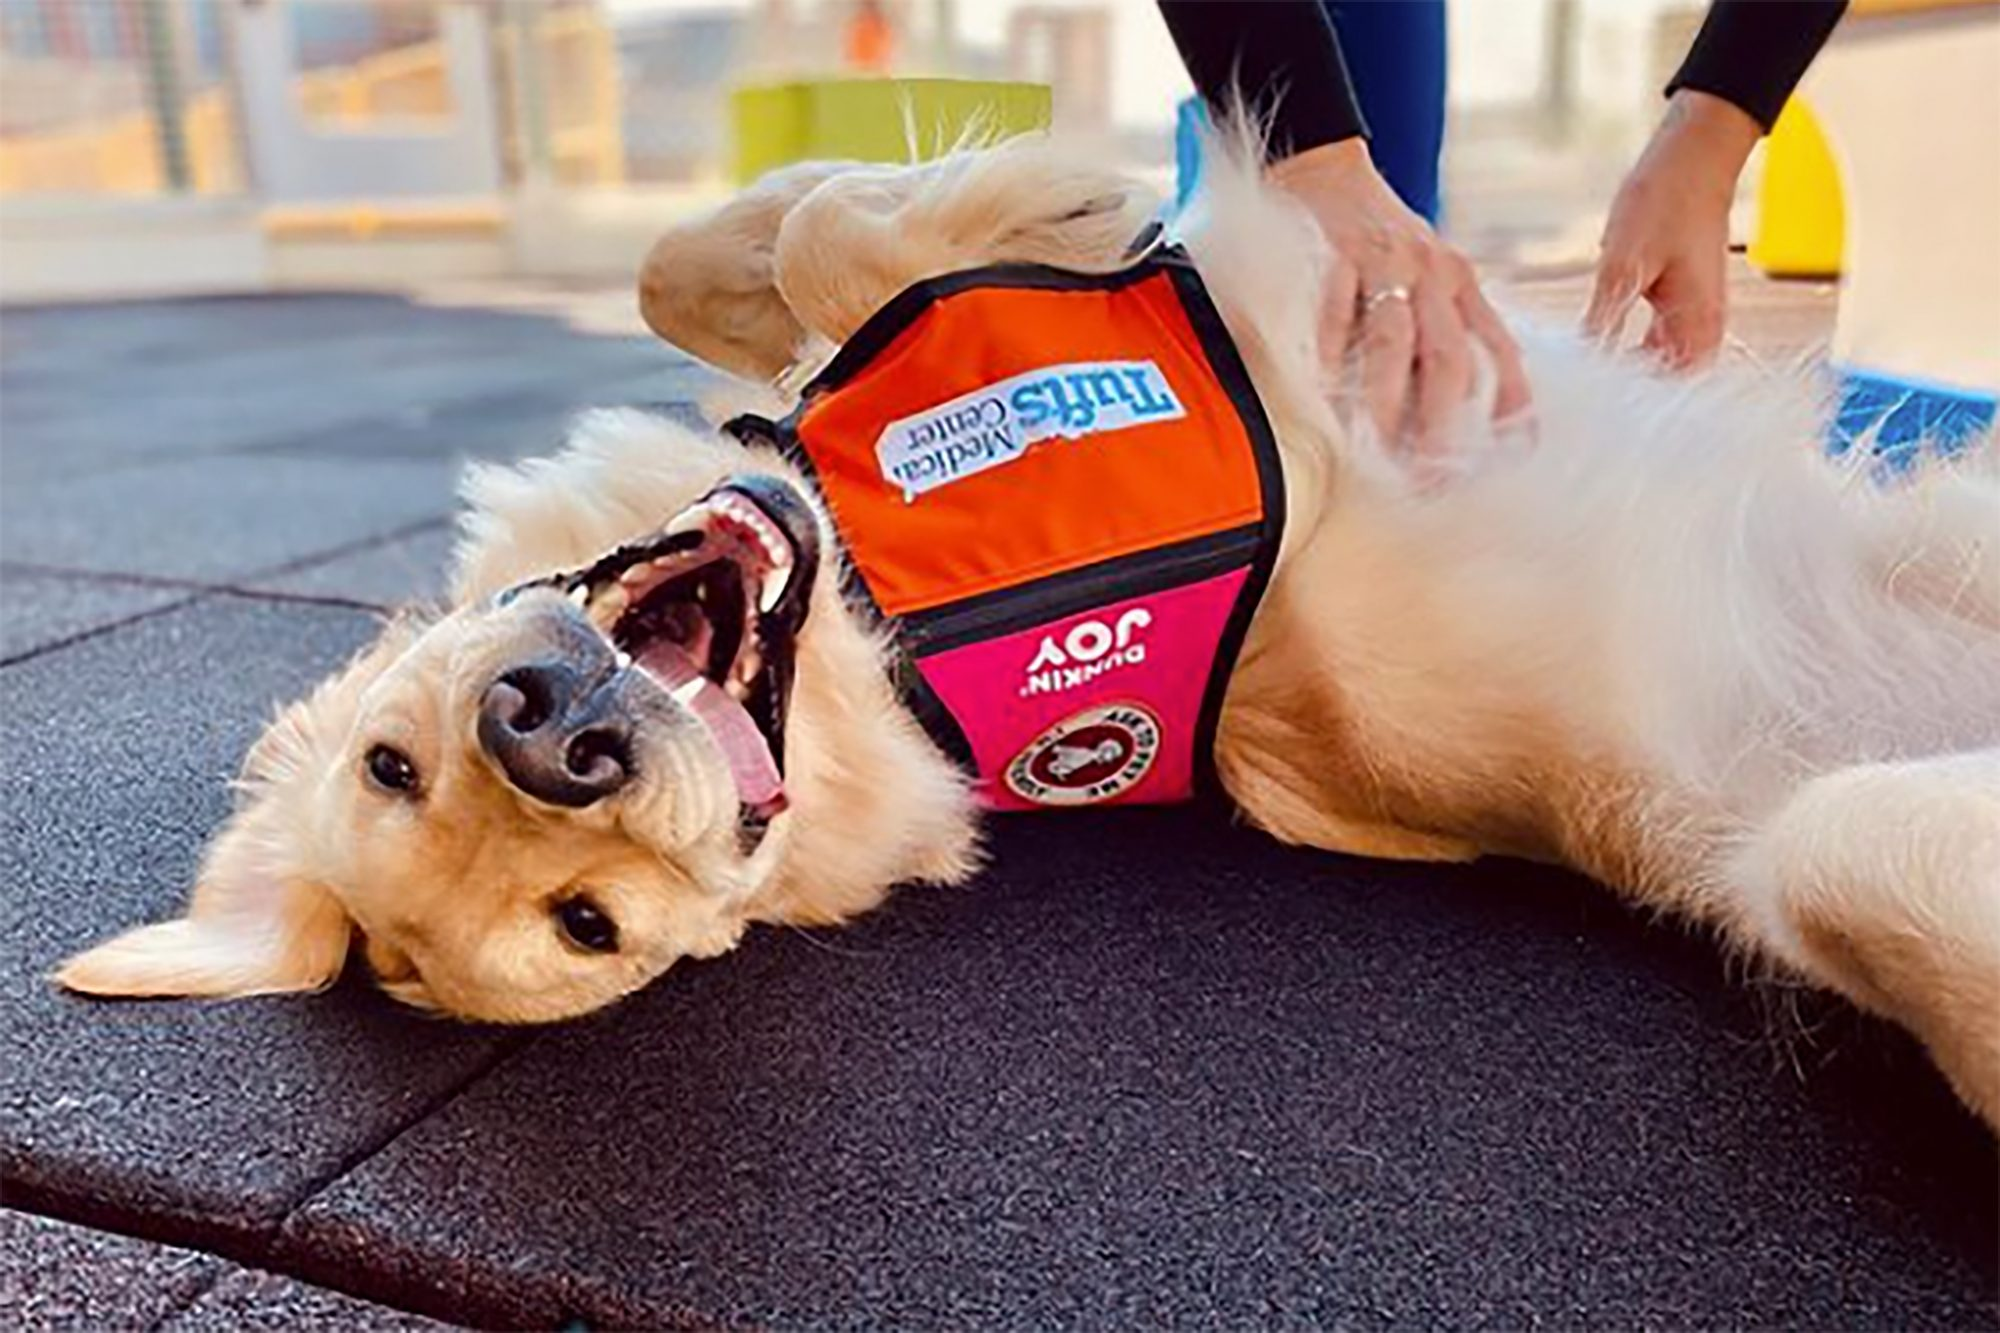 Bob, the Tufts Children's Hospital service dog laying on his back, getting a belly rub